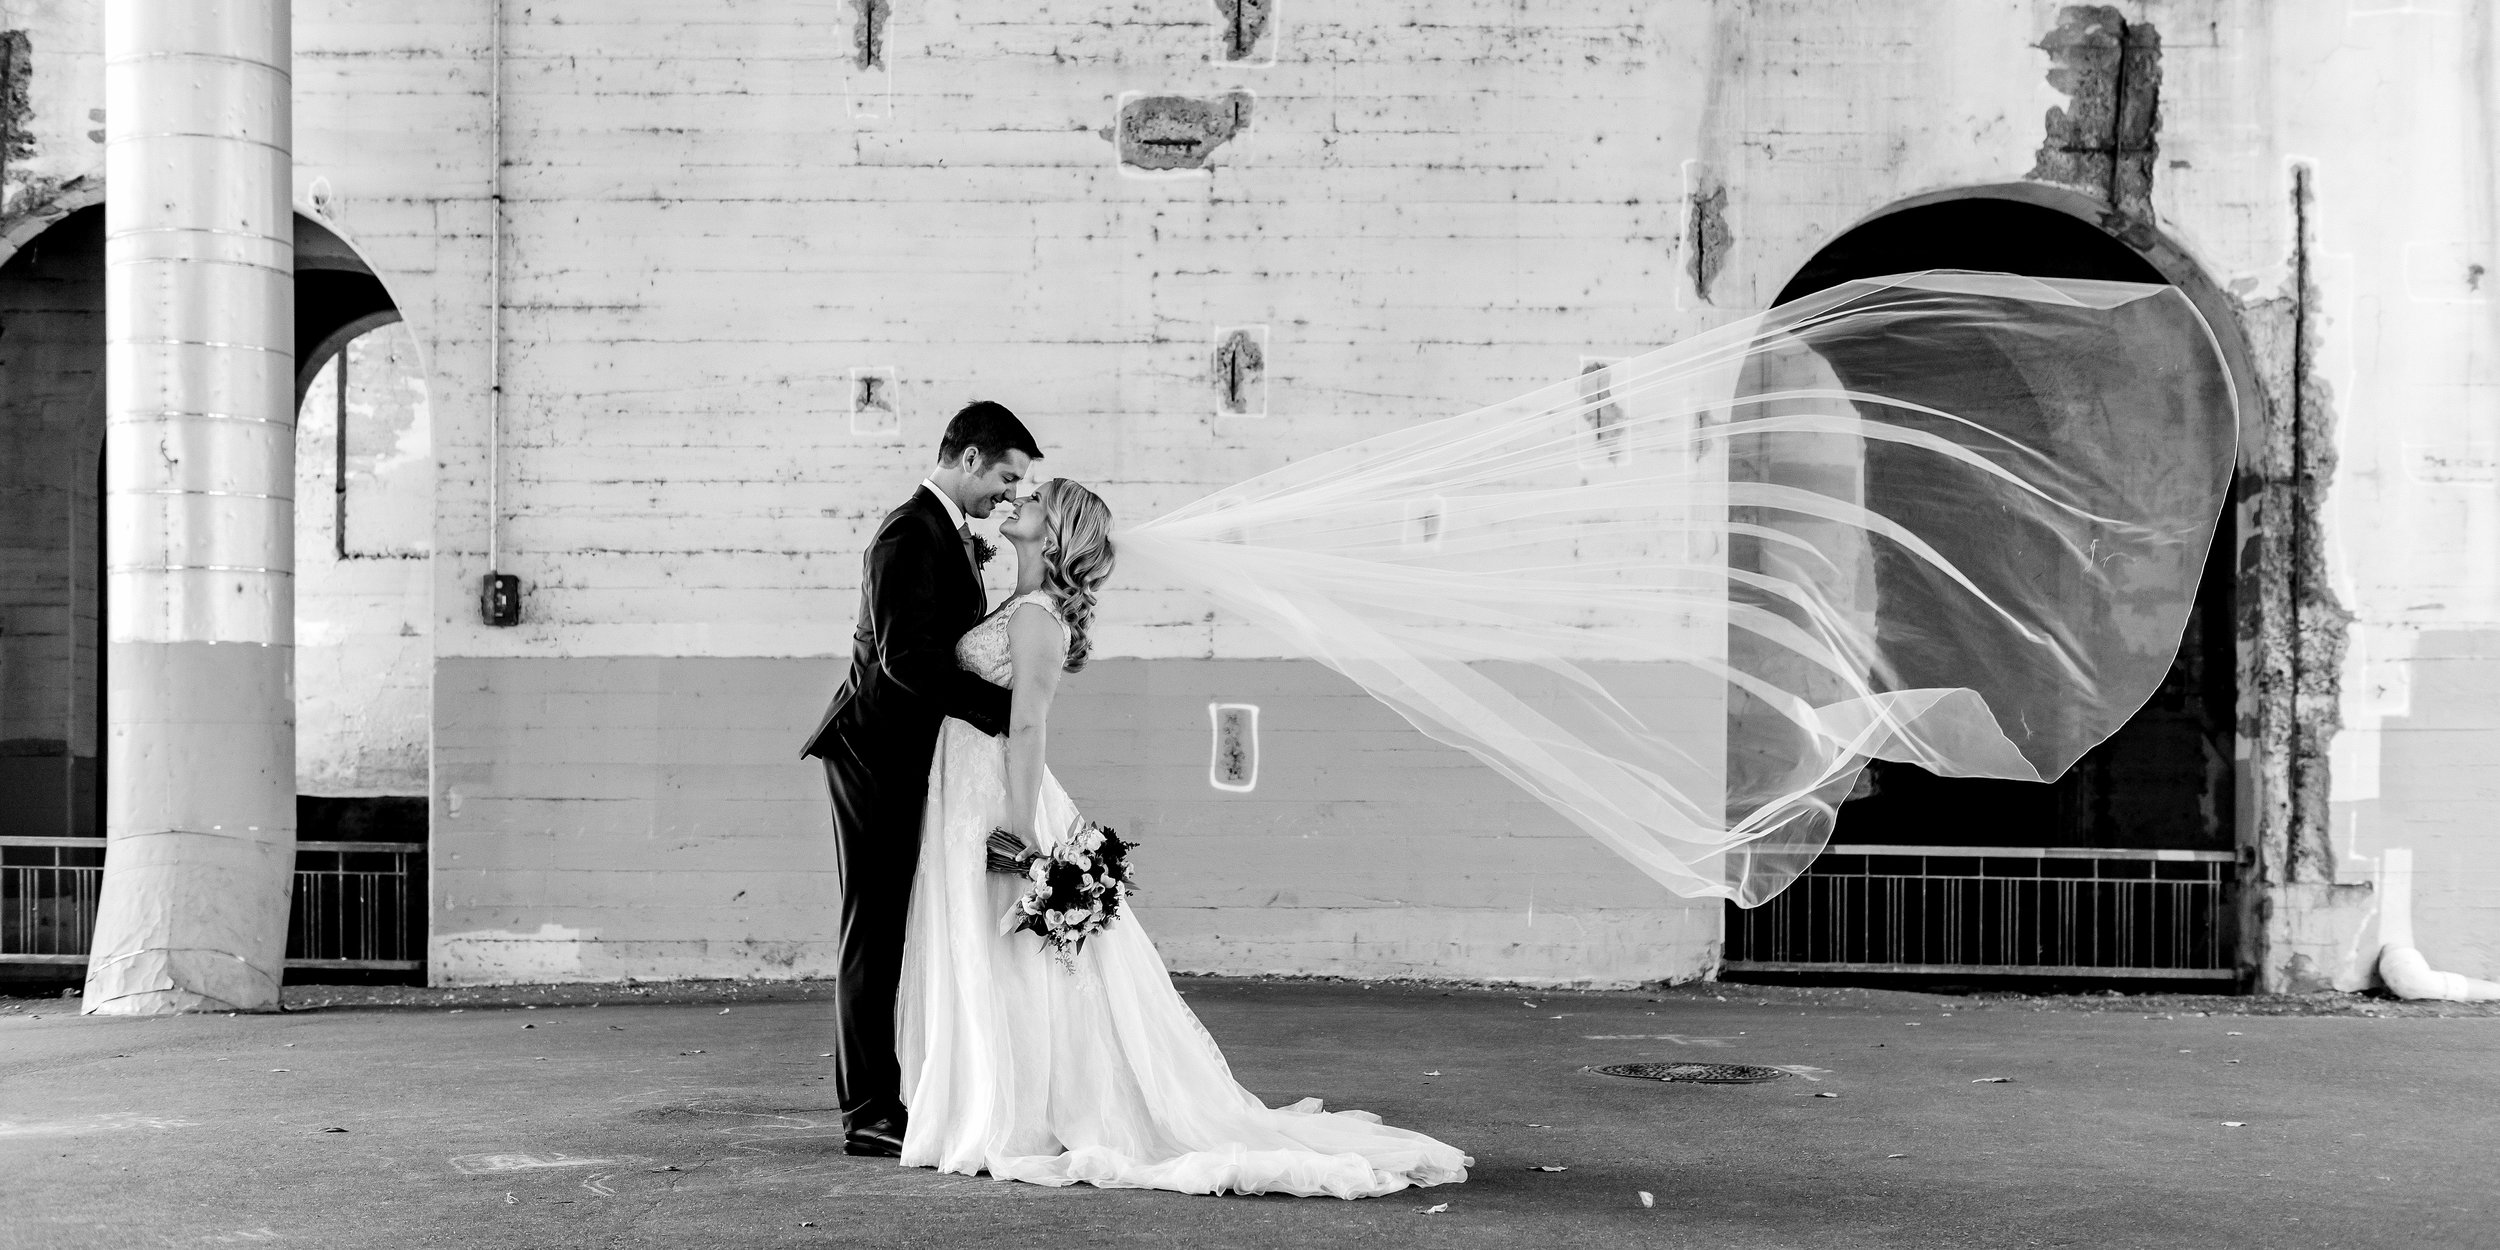 Kristen + Eric - Wedding Album Sample_15.jpg